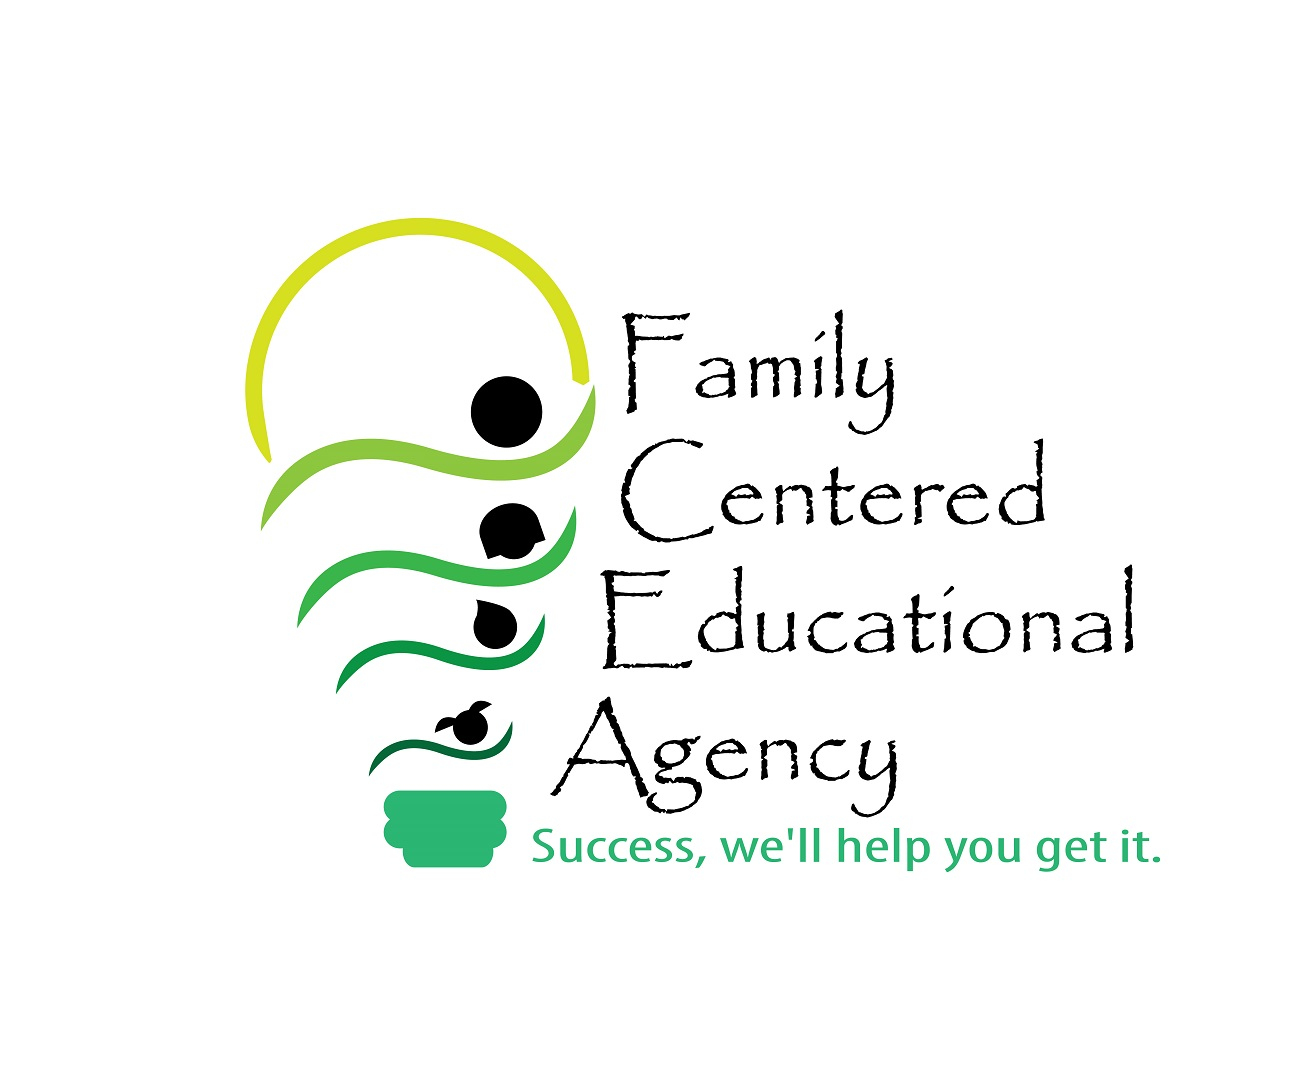 Logo Design by jhunzkie24 - Entry No. 42 in the Logo Design Contest Captivating Logo Design for Family Centered Educational Agency.